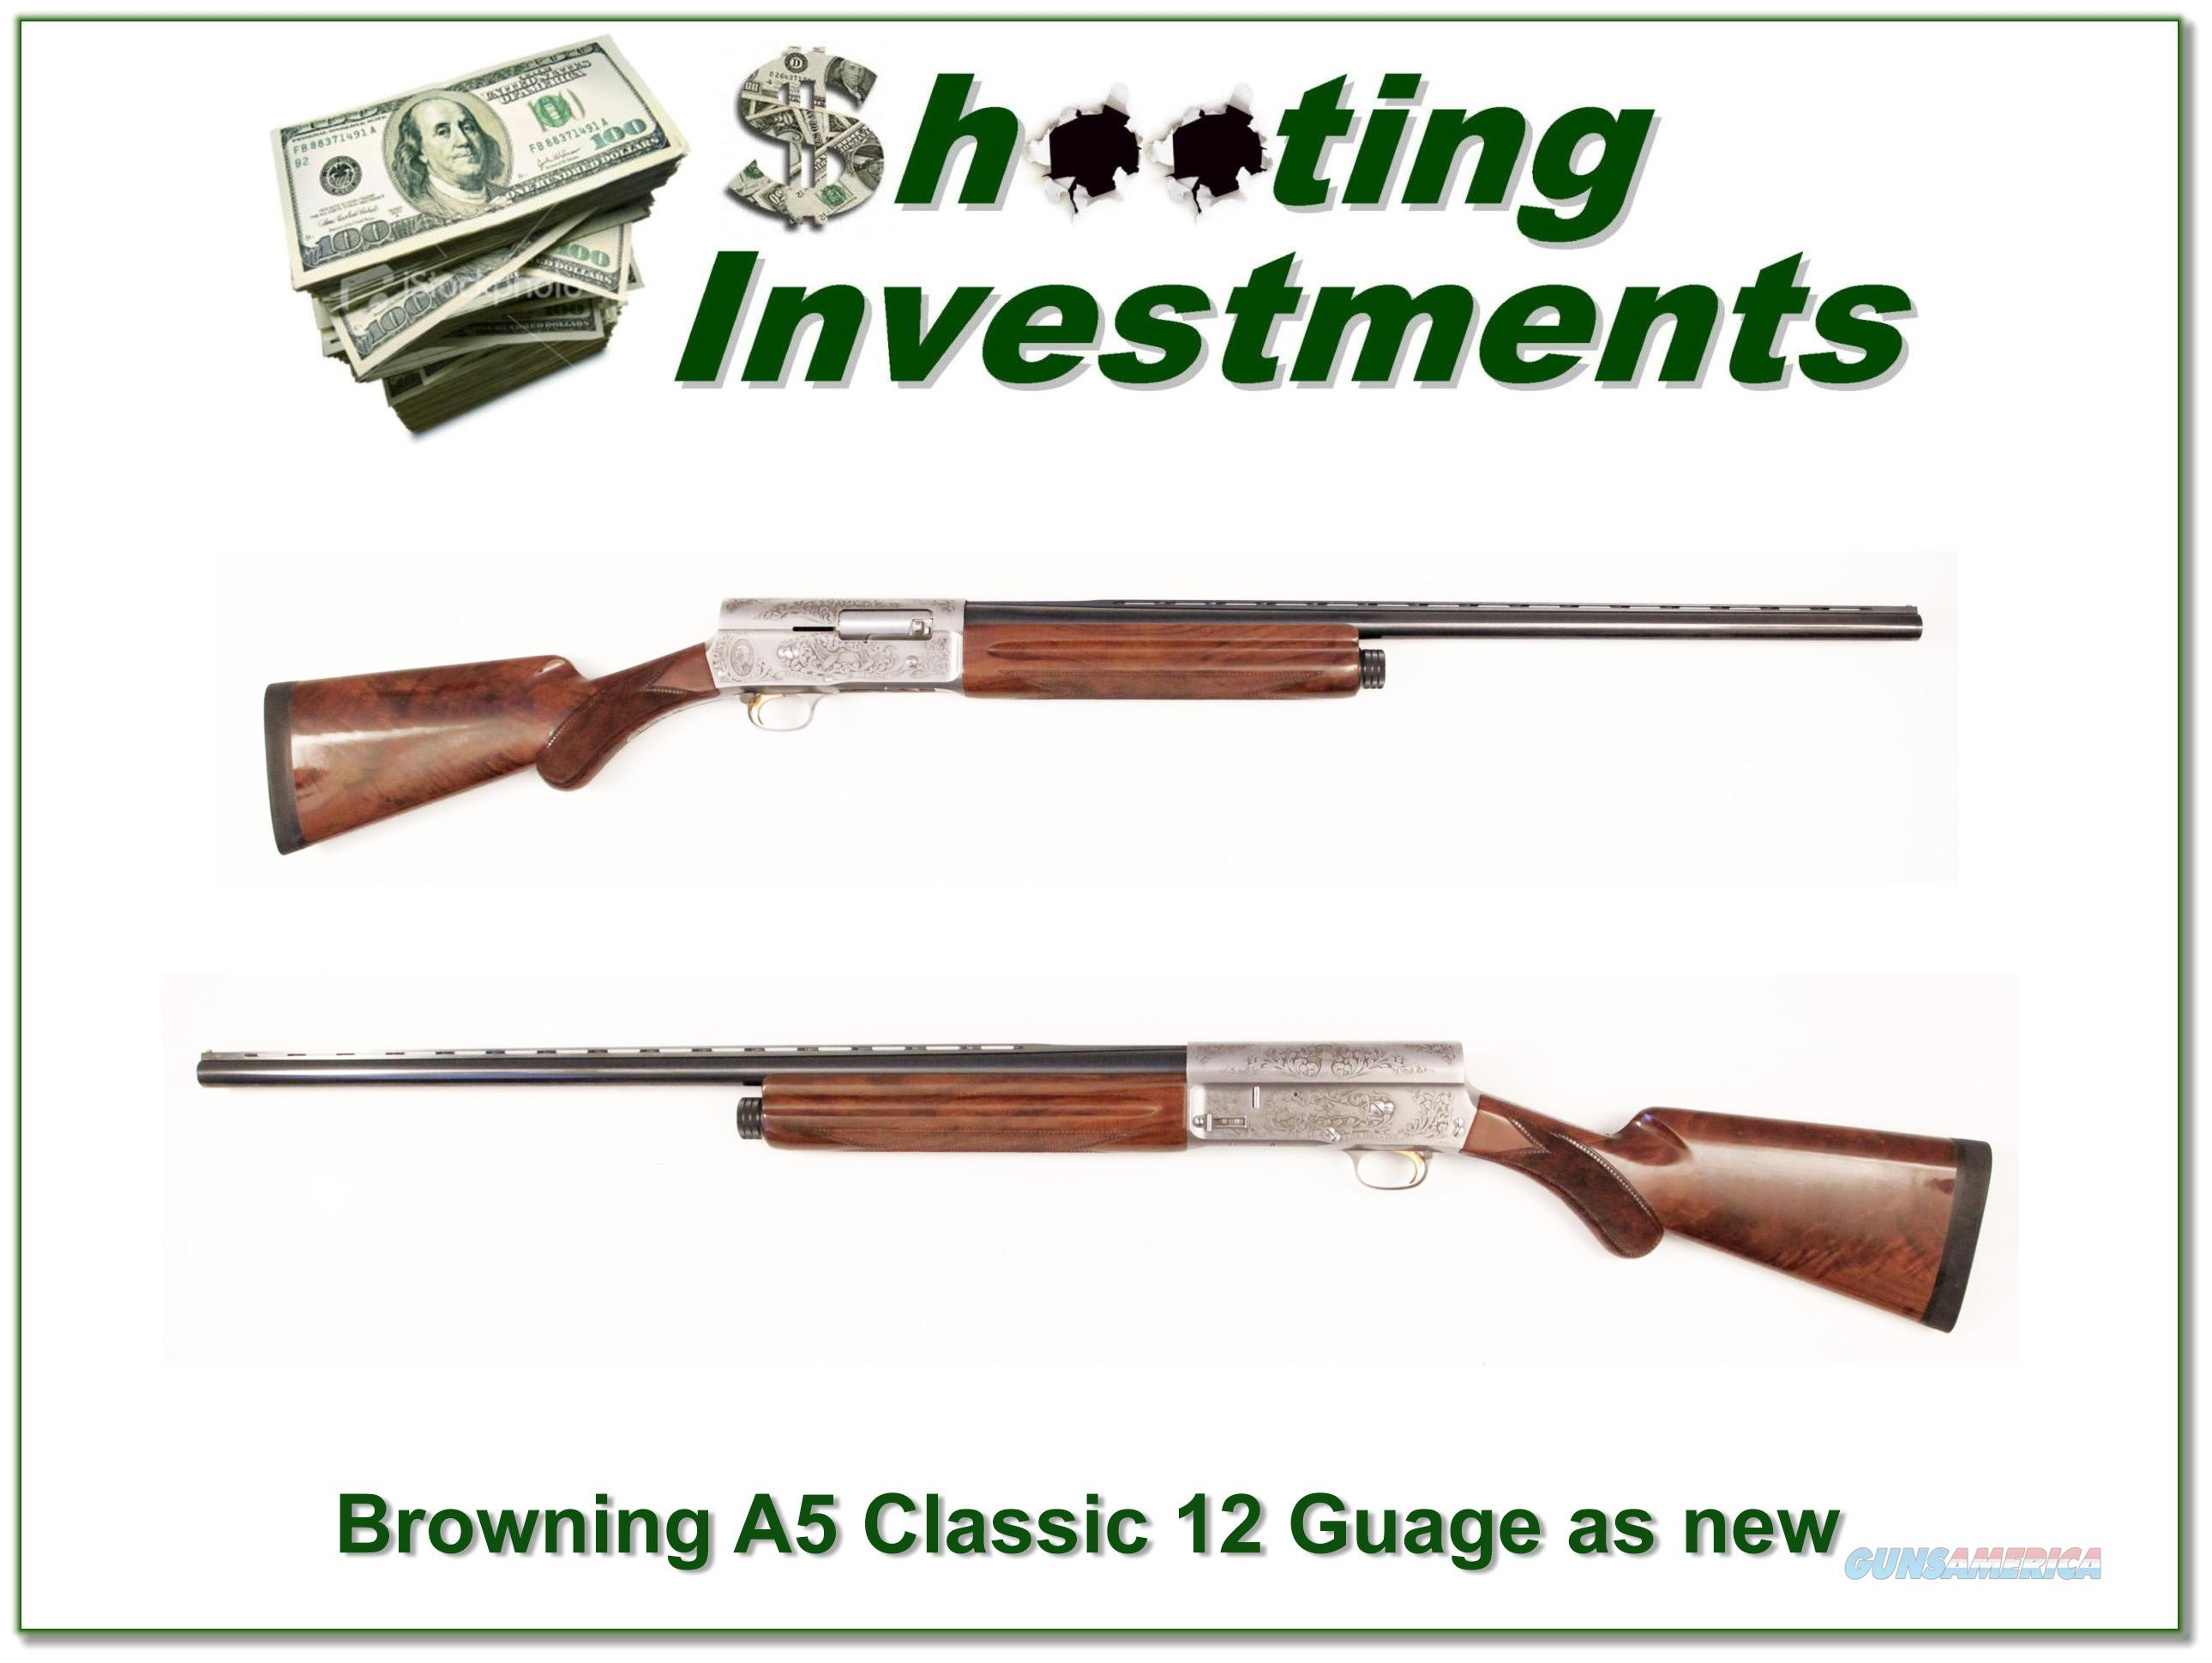 Browning A5 Classic 12 Gauge XX Wood as new!  Guns > Shotguns > Browning Shotguns > Autoloaders > Hunting